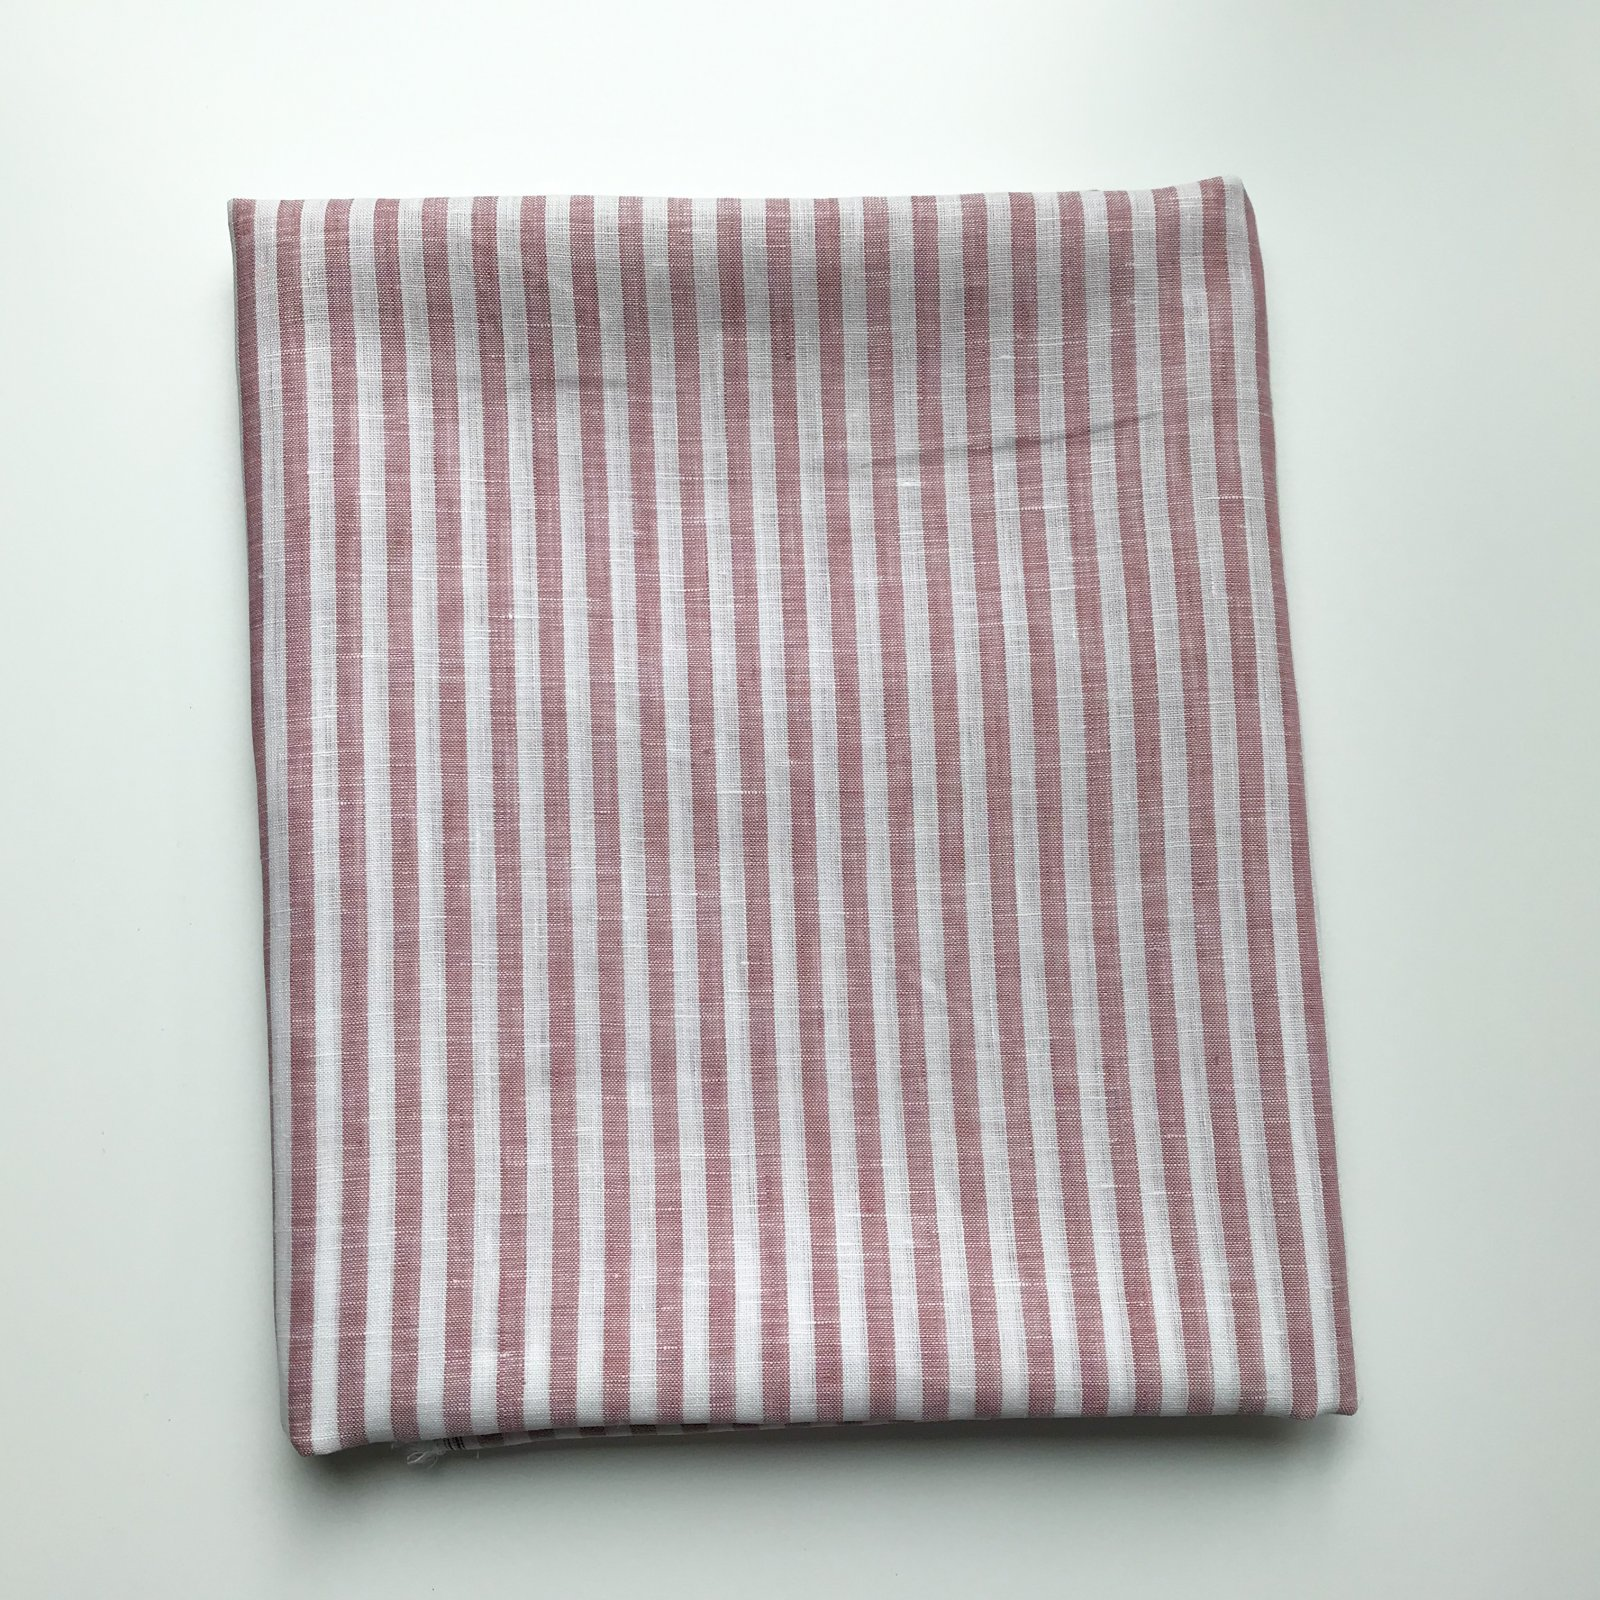 1 yard + 6 inches - Linen - Cranberry and White Stripes